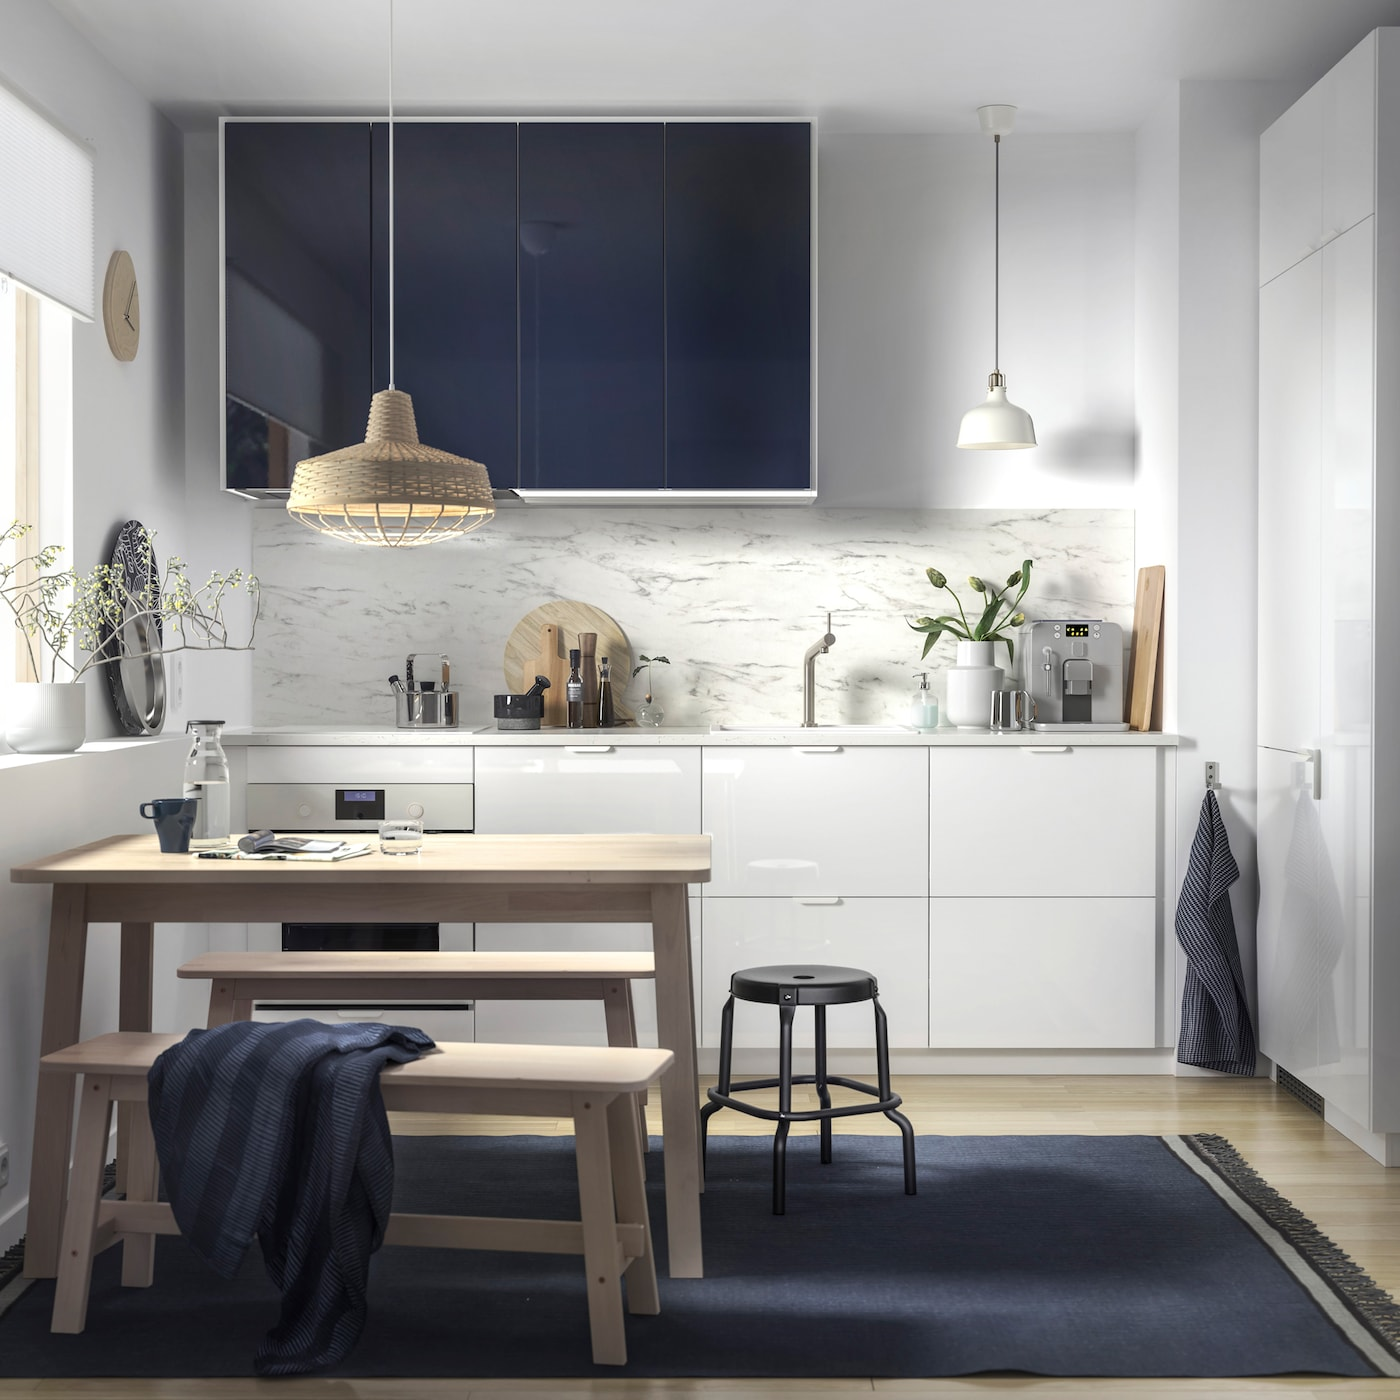 Exceptionnel The Sleek And Sophisticated Kitchenette   IKEA